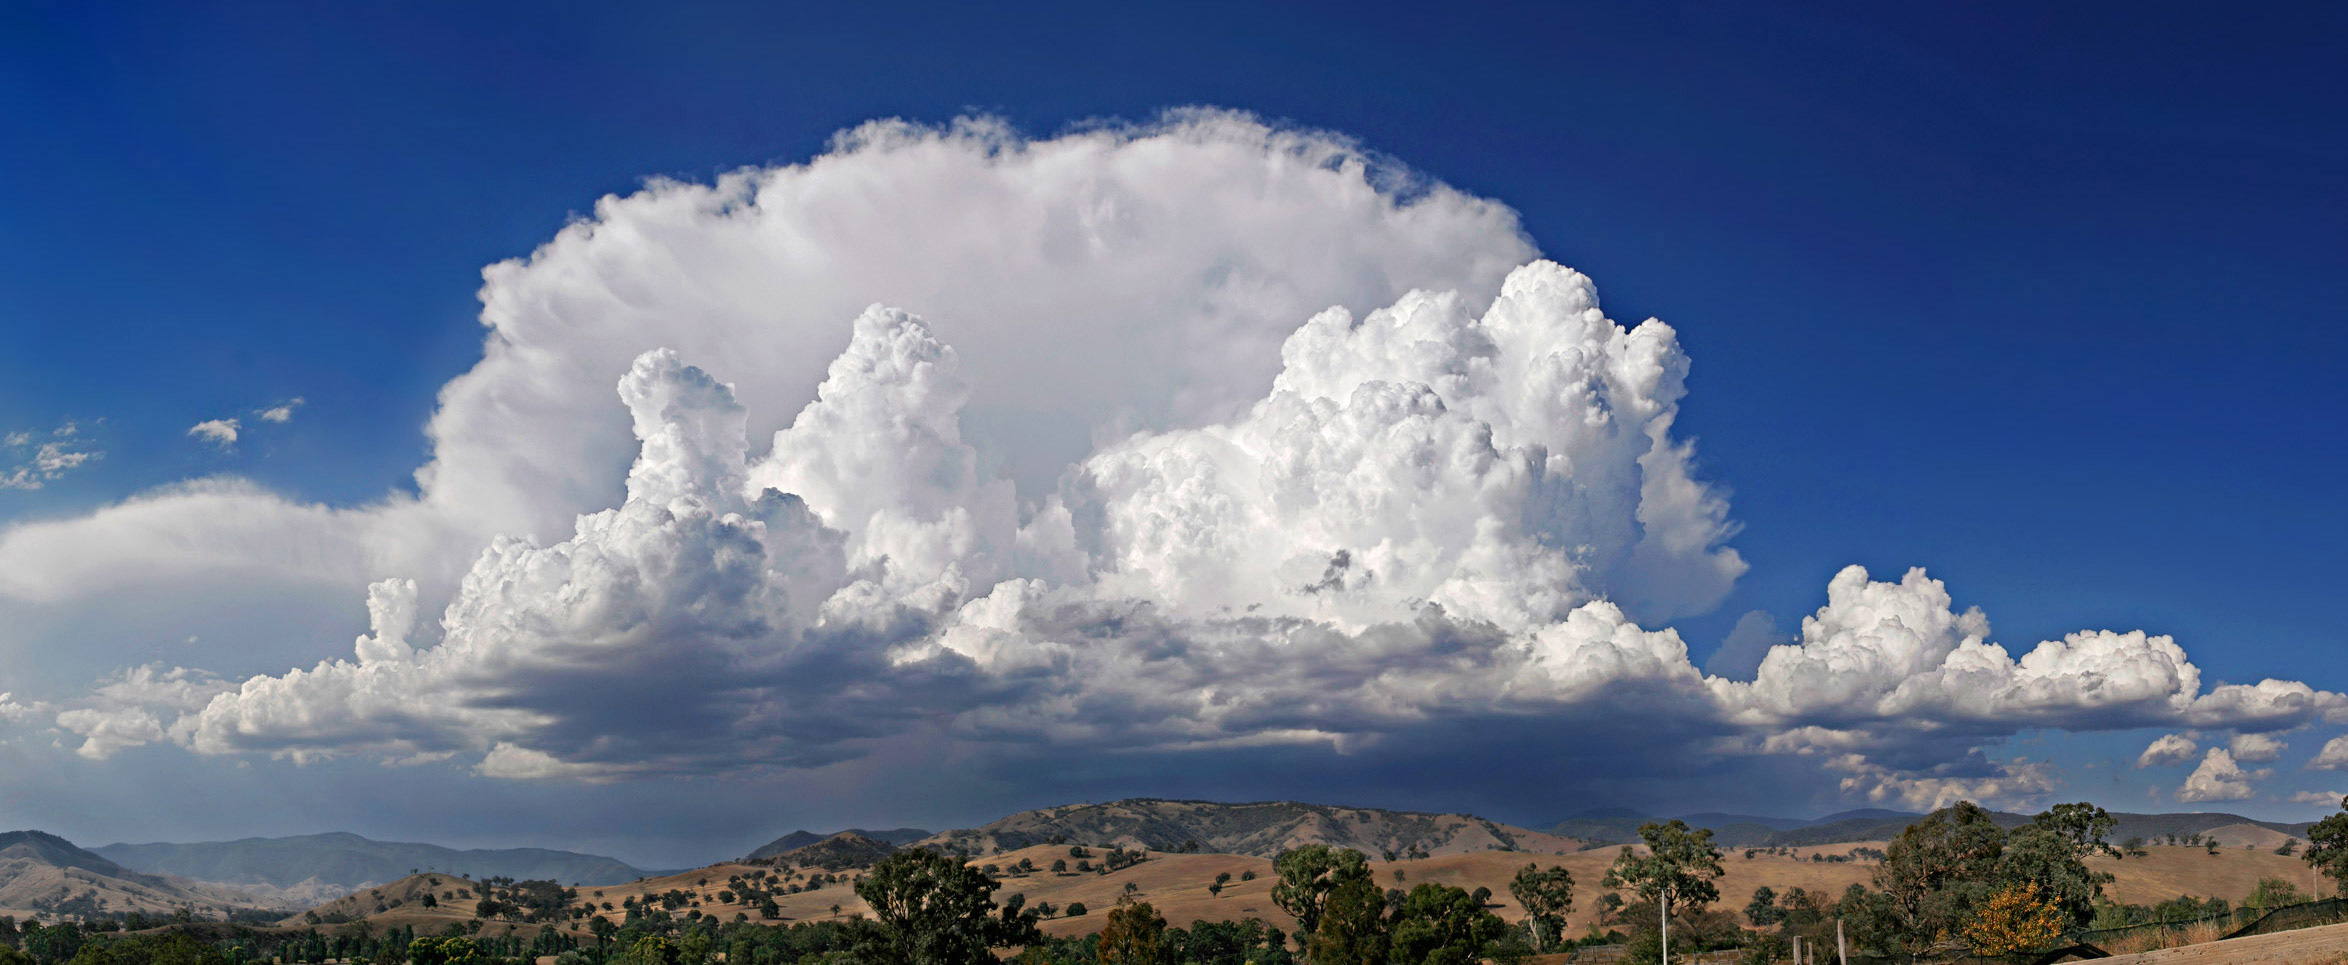 The clouds and classification of the clouds